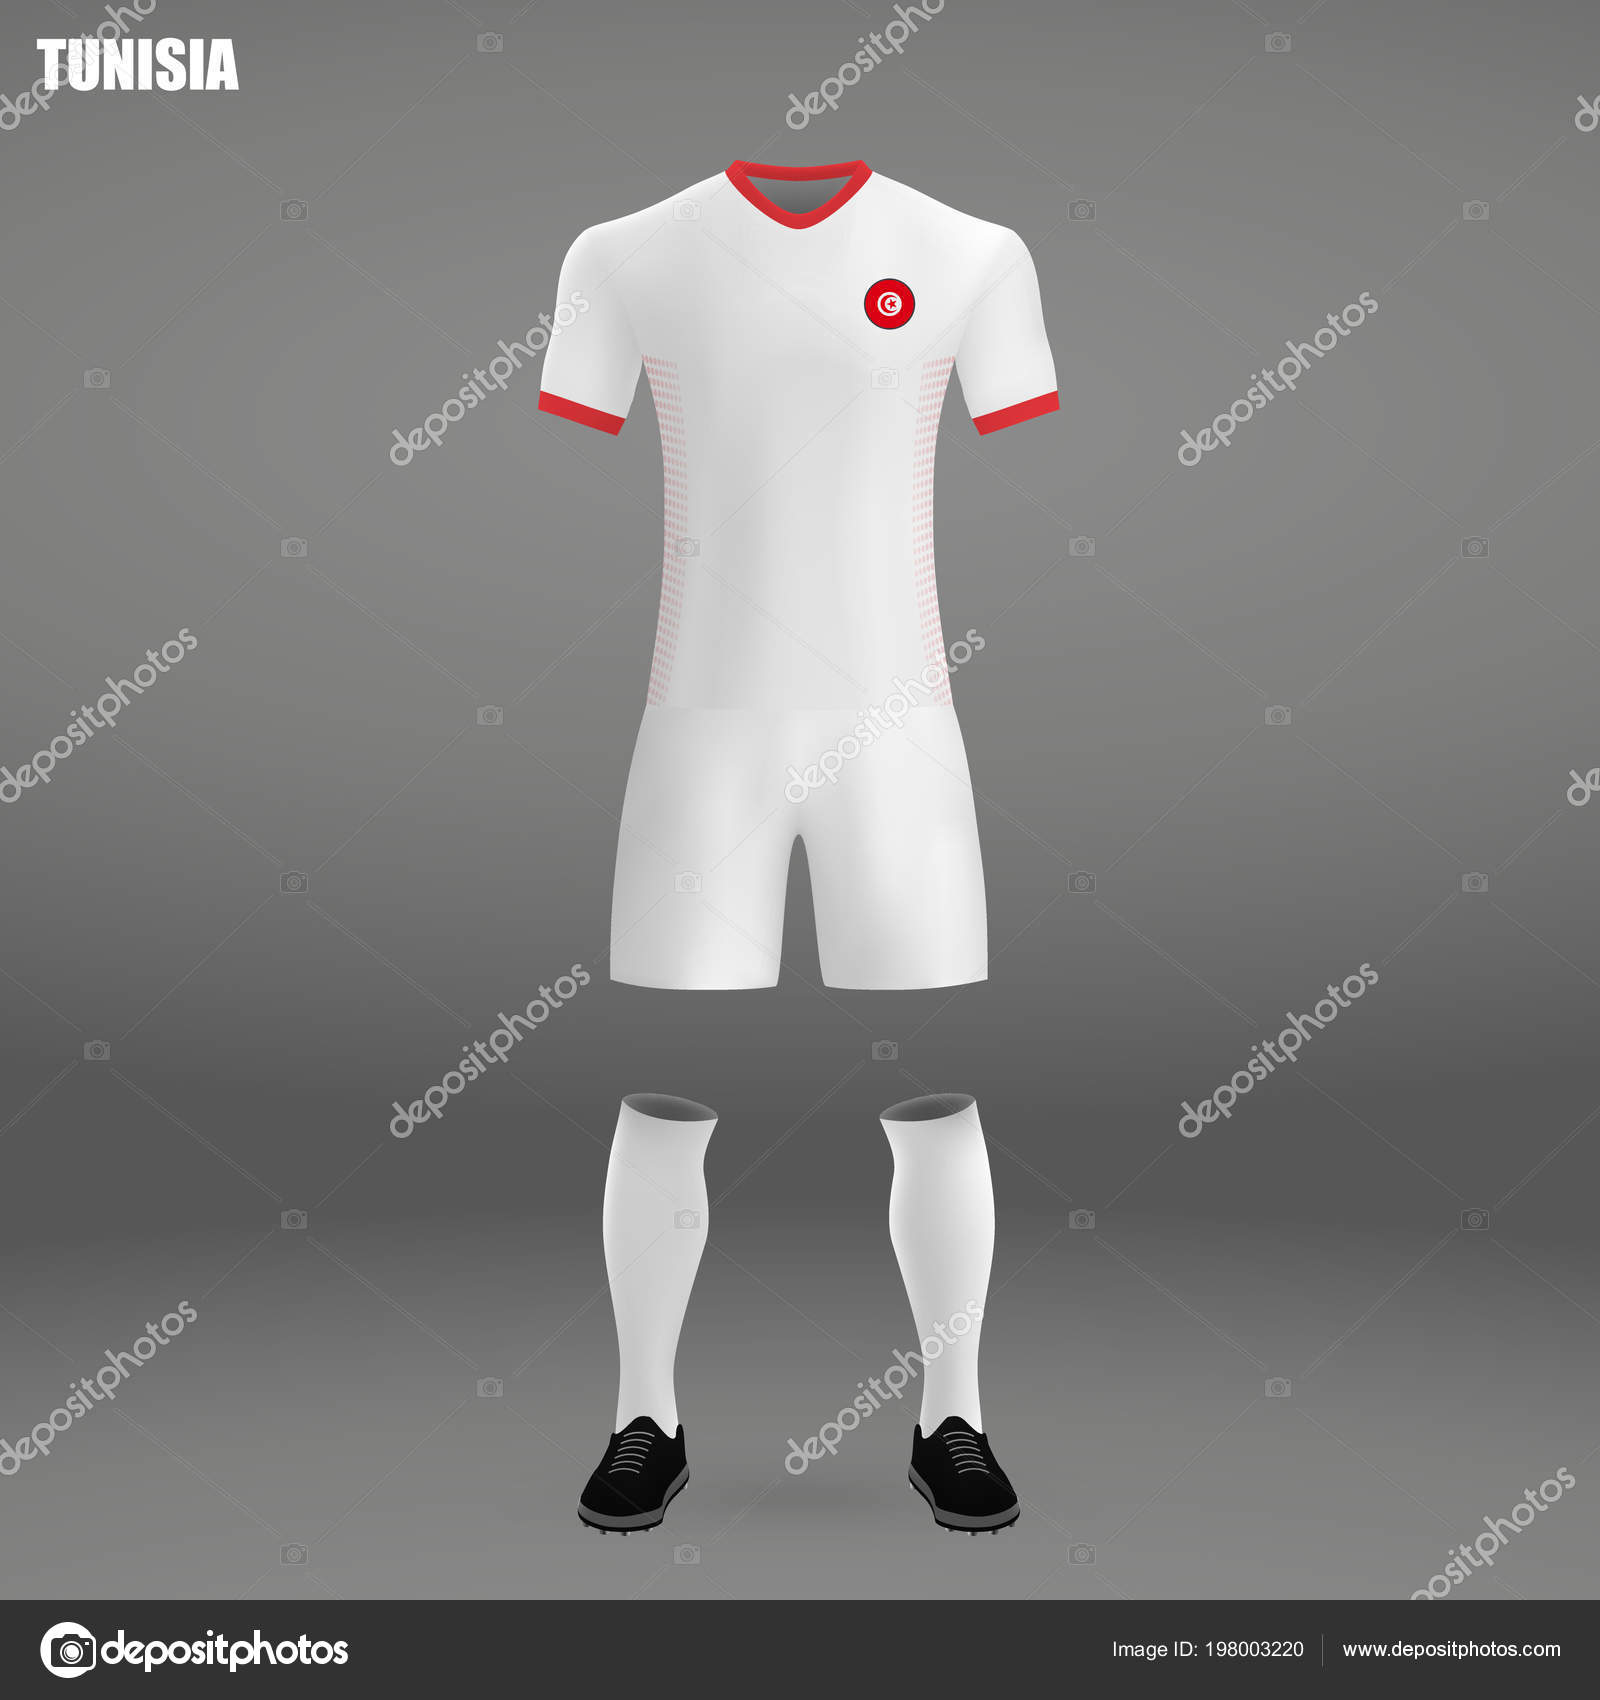 on sale 7669c b9cbb Football Kit Tunisia 2018 Shirt Template Soccer Jersey ...